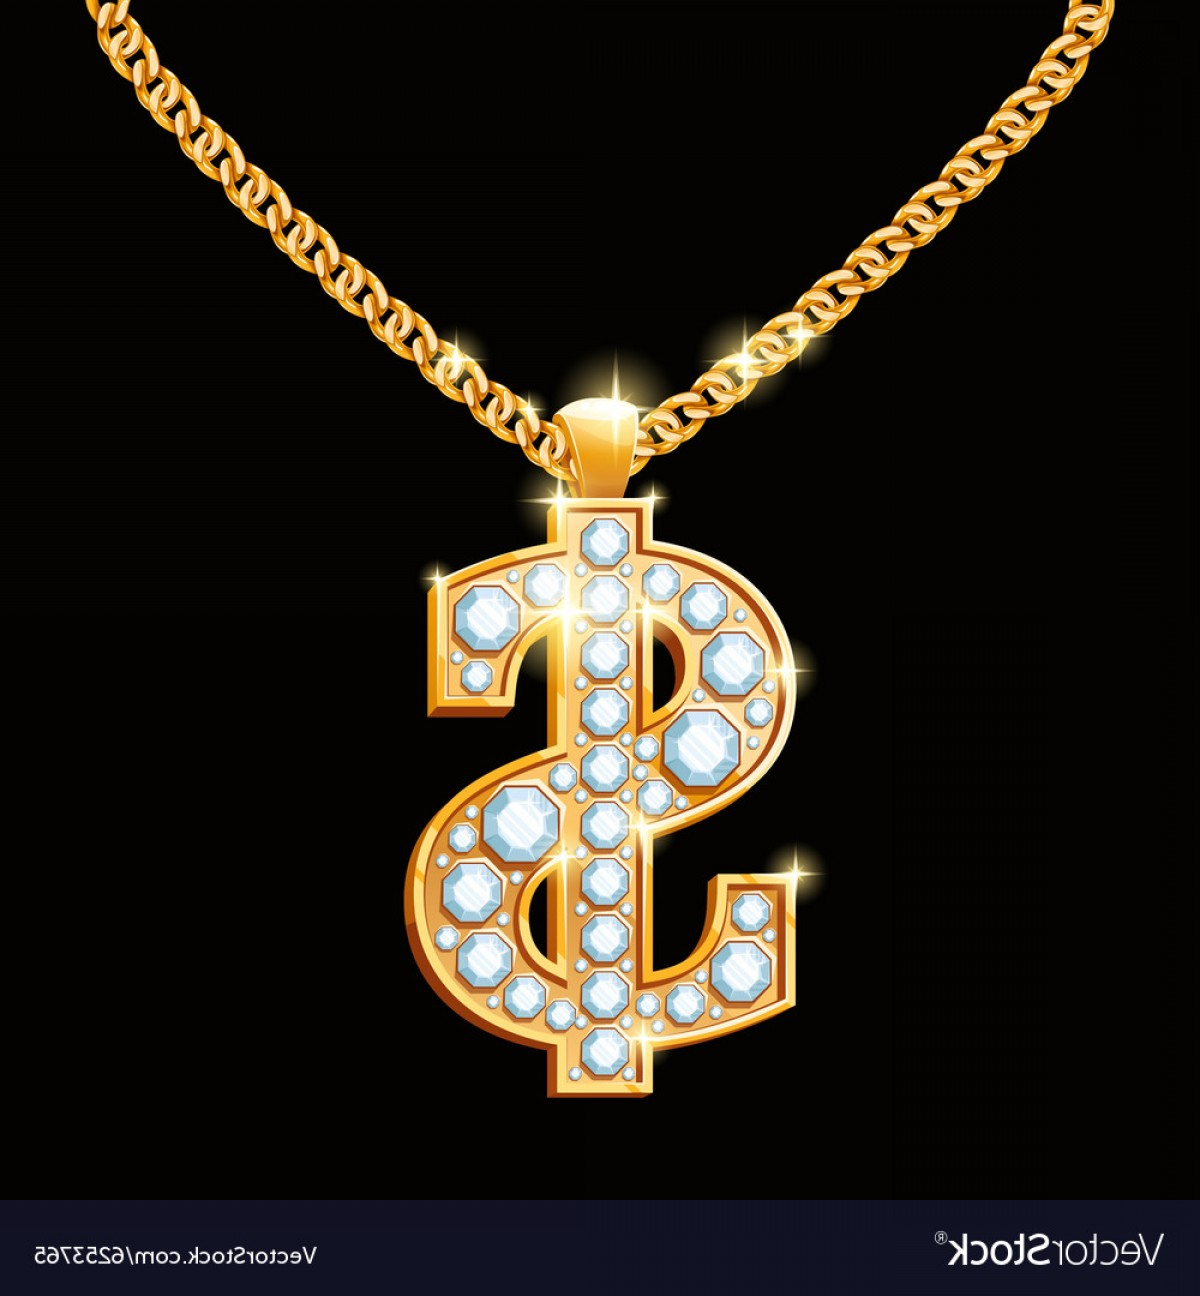 Necklace Vector Chain Grapicts: Dollar Sign With Diamonds On Gold Chain Hip Hop Vector